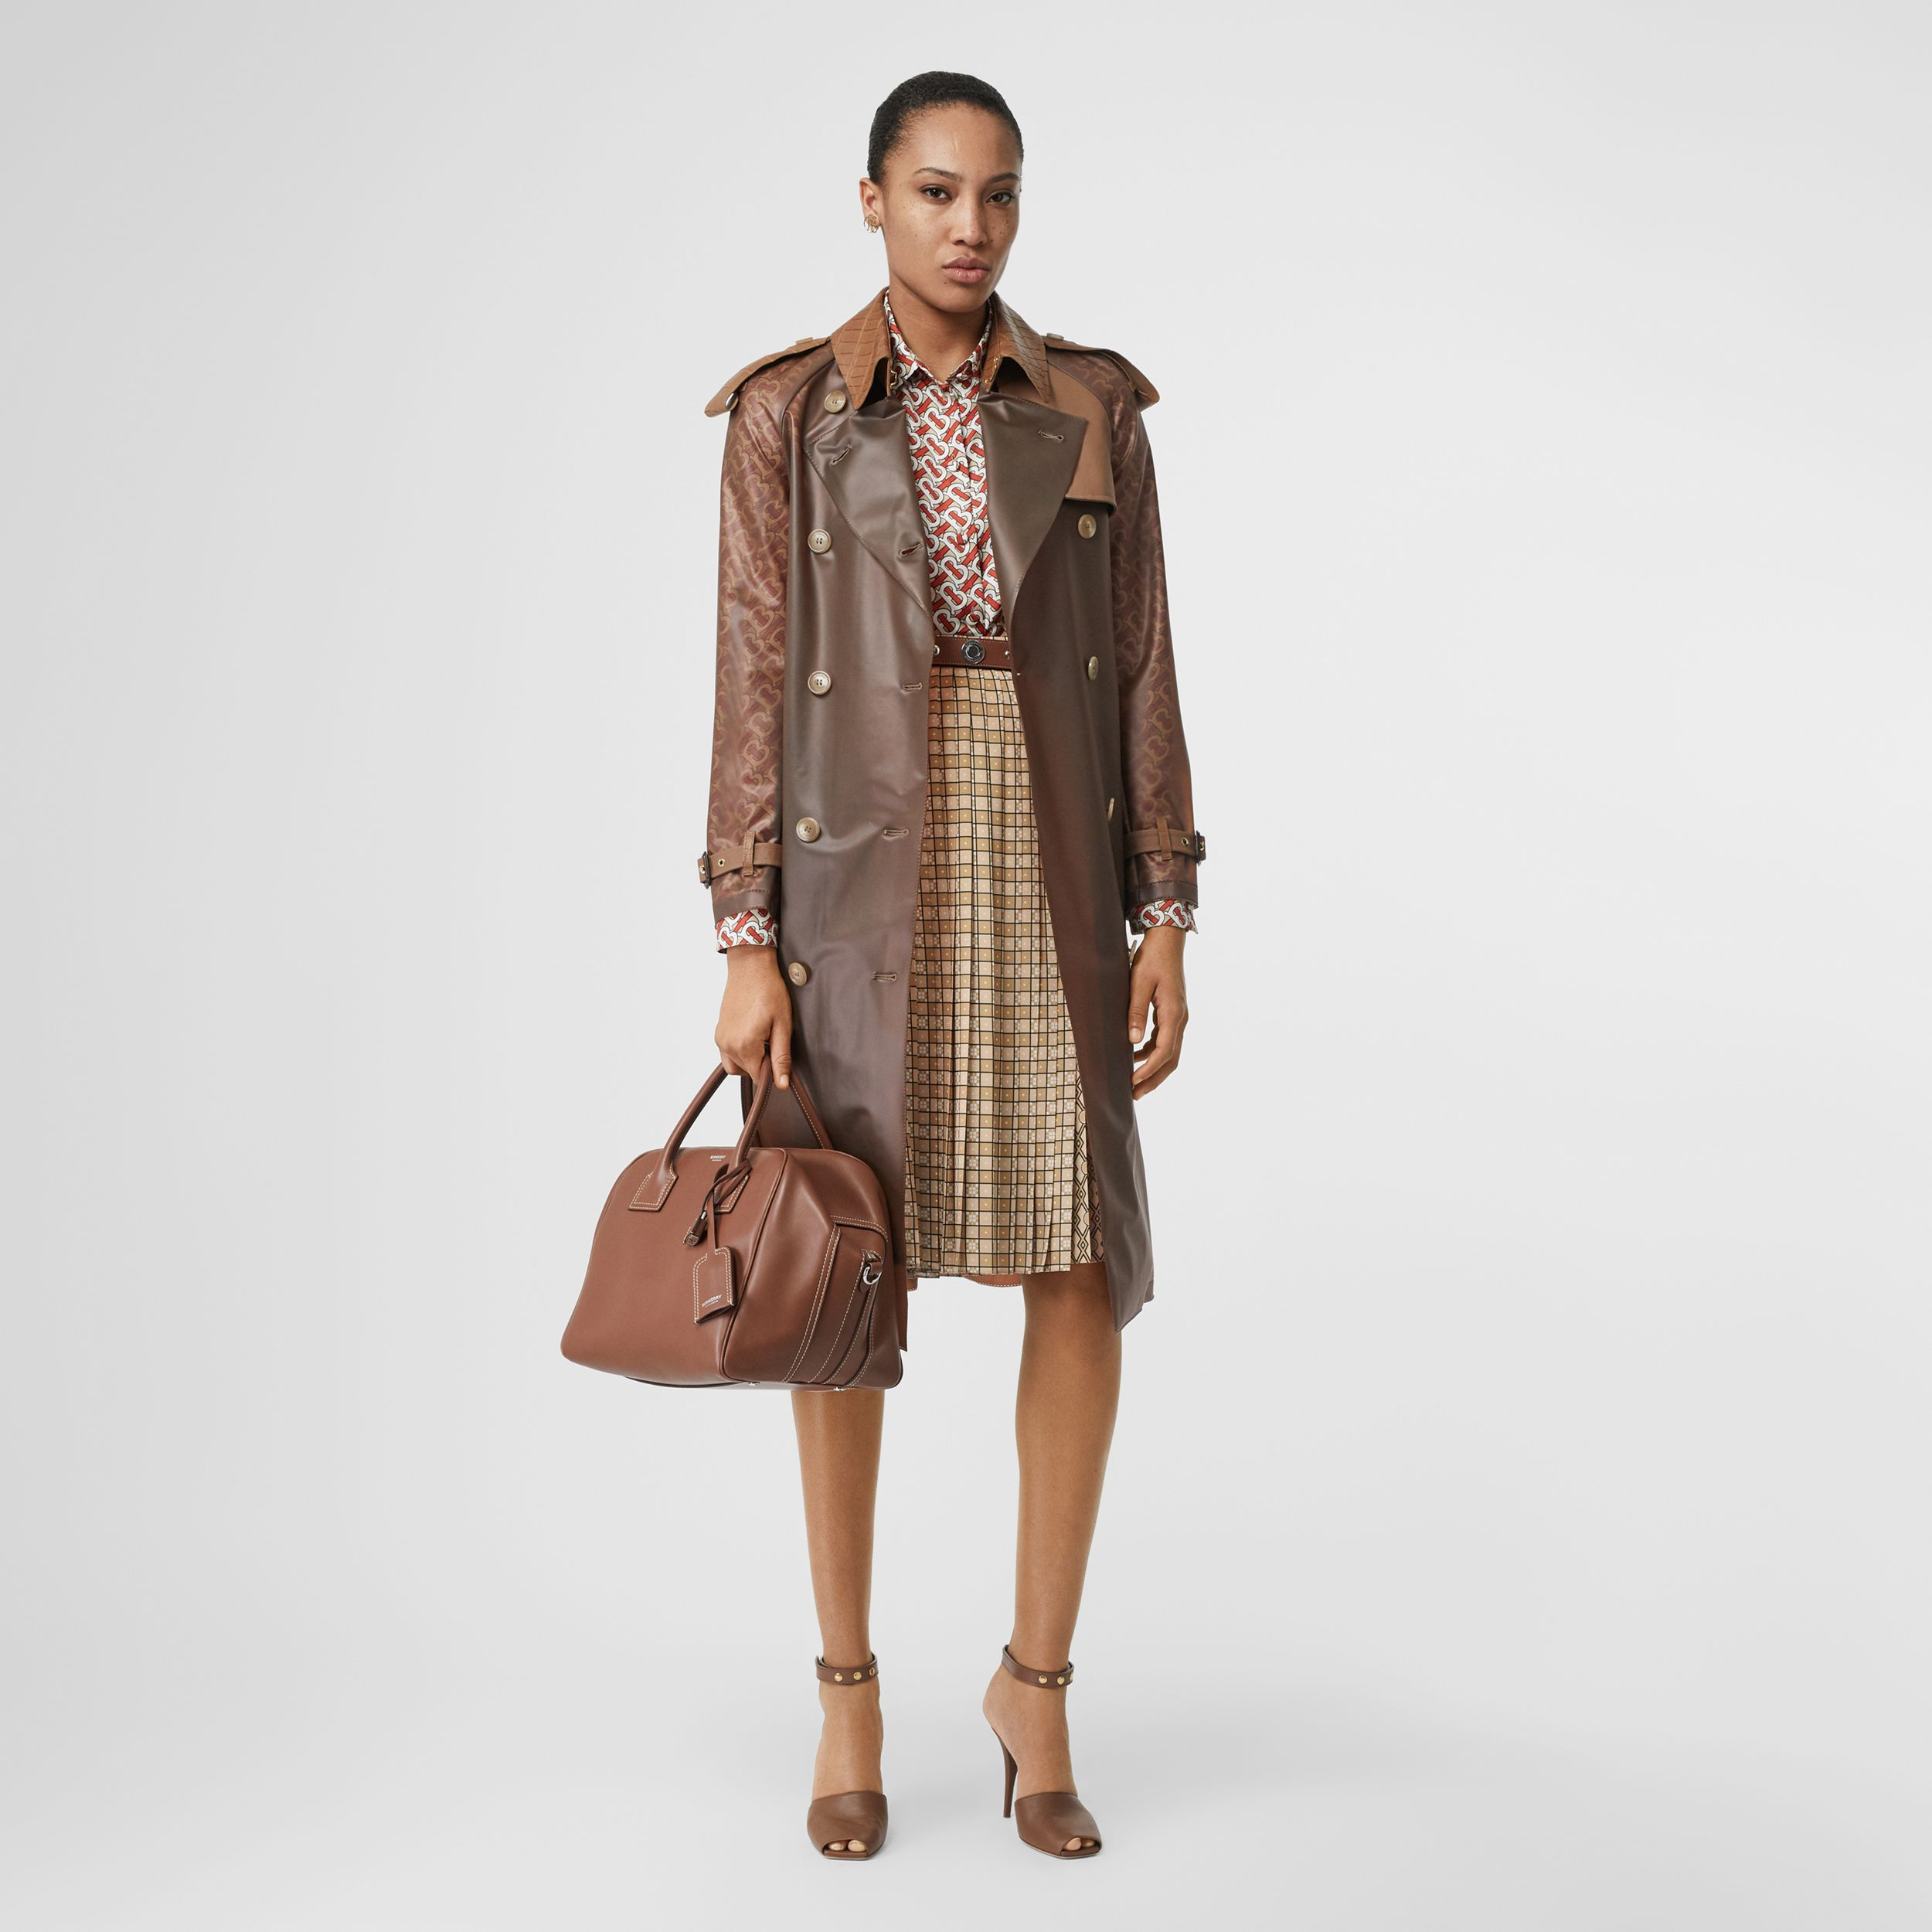 Contrast Graphic Print Pleated Skirt in Latte | Burberry Singapore - 1